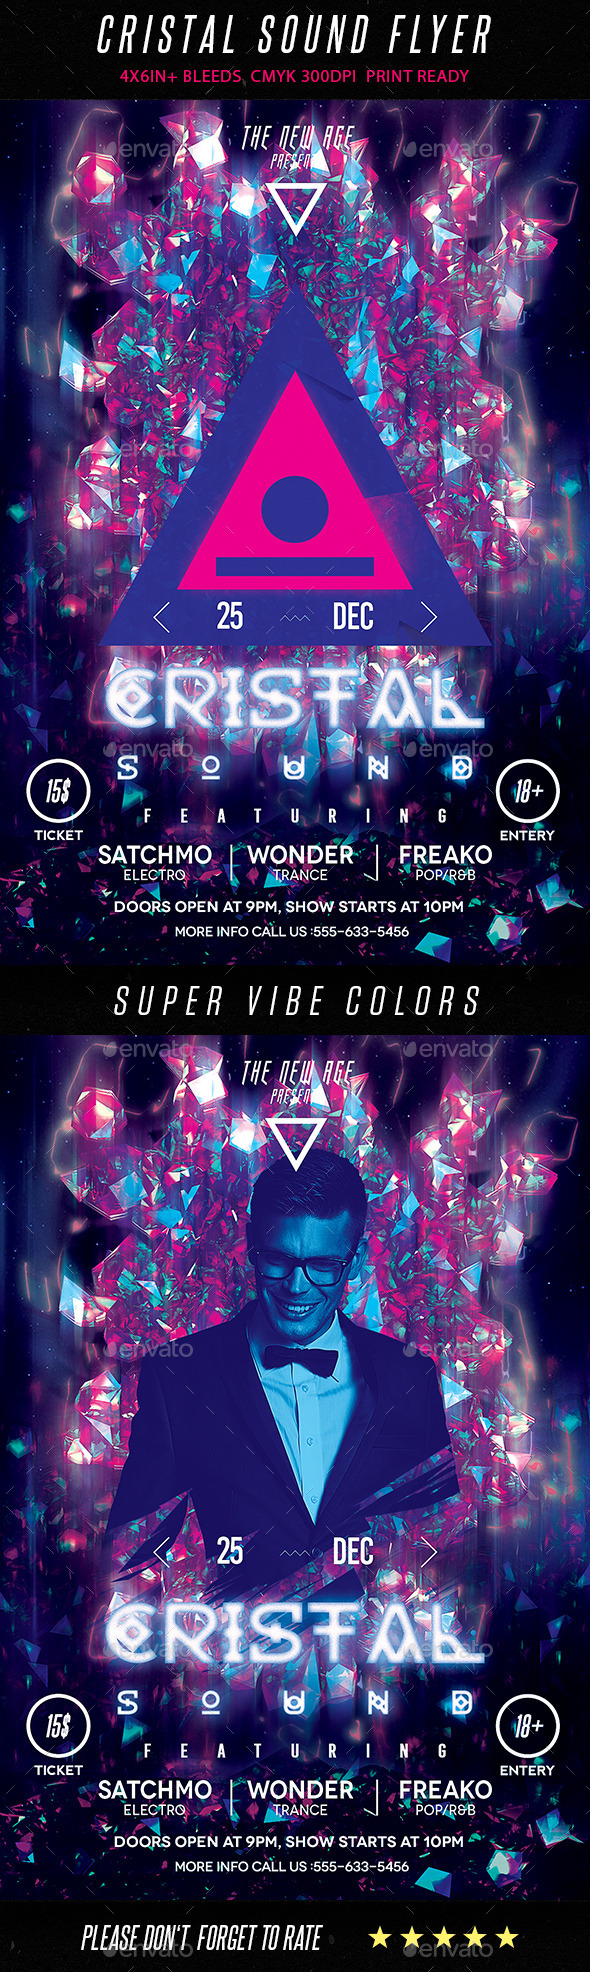 Cristal Sound Flyer - Clubs & Parties Events